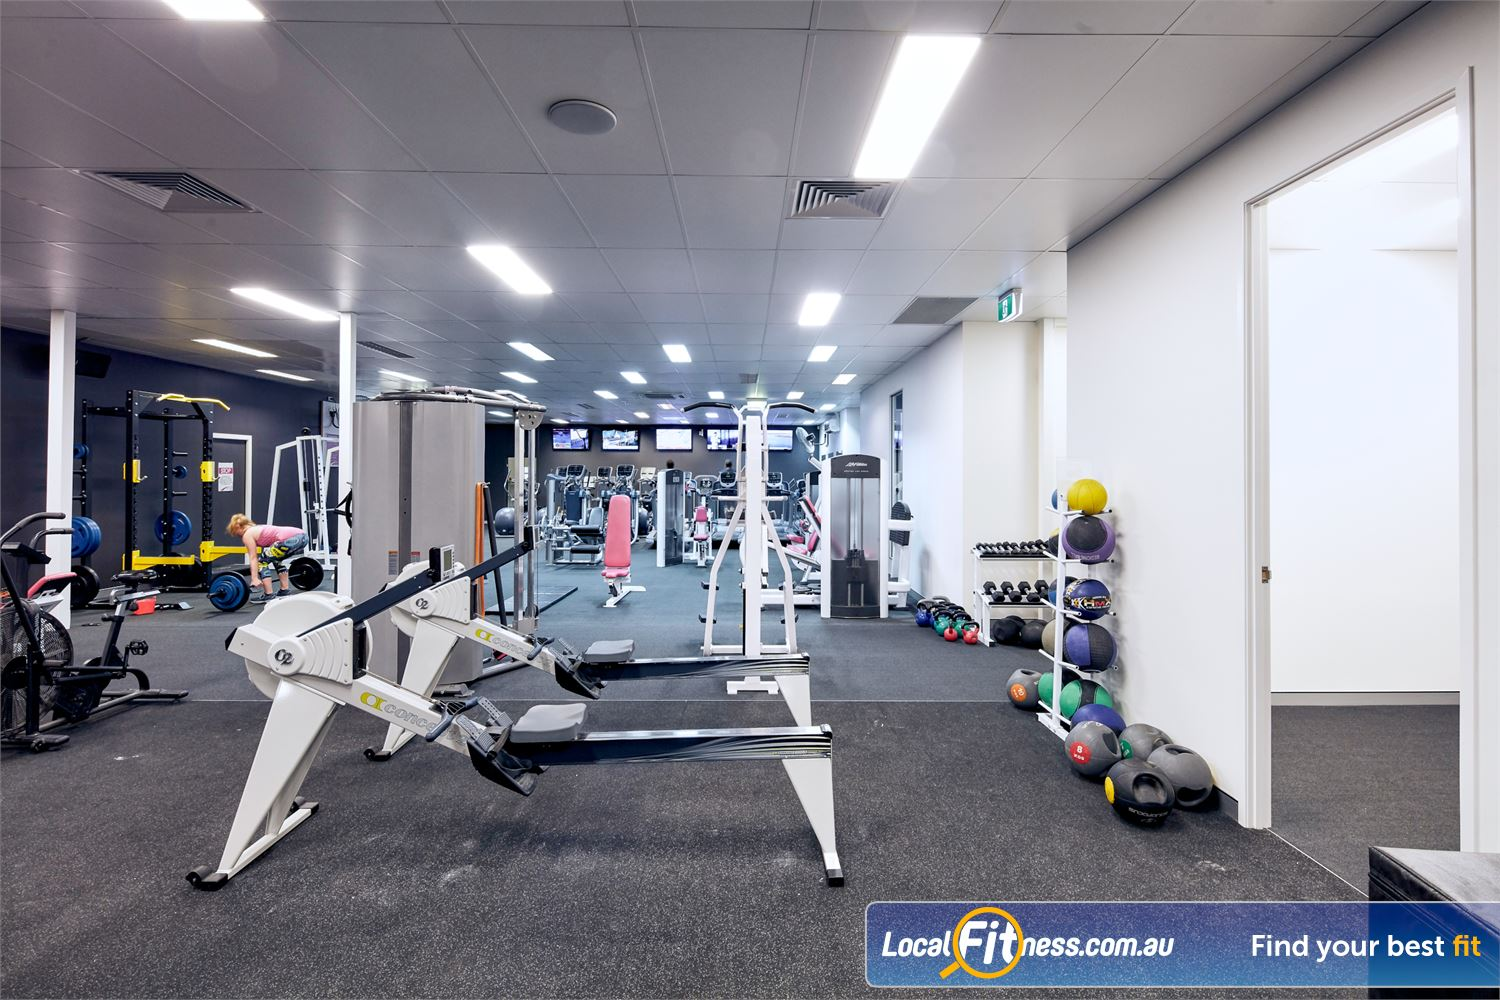 Fernwood Fitness Near Hillcrest The womens only cardio area in Fernwood Browns Plains gym.